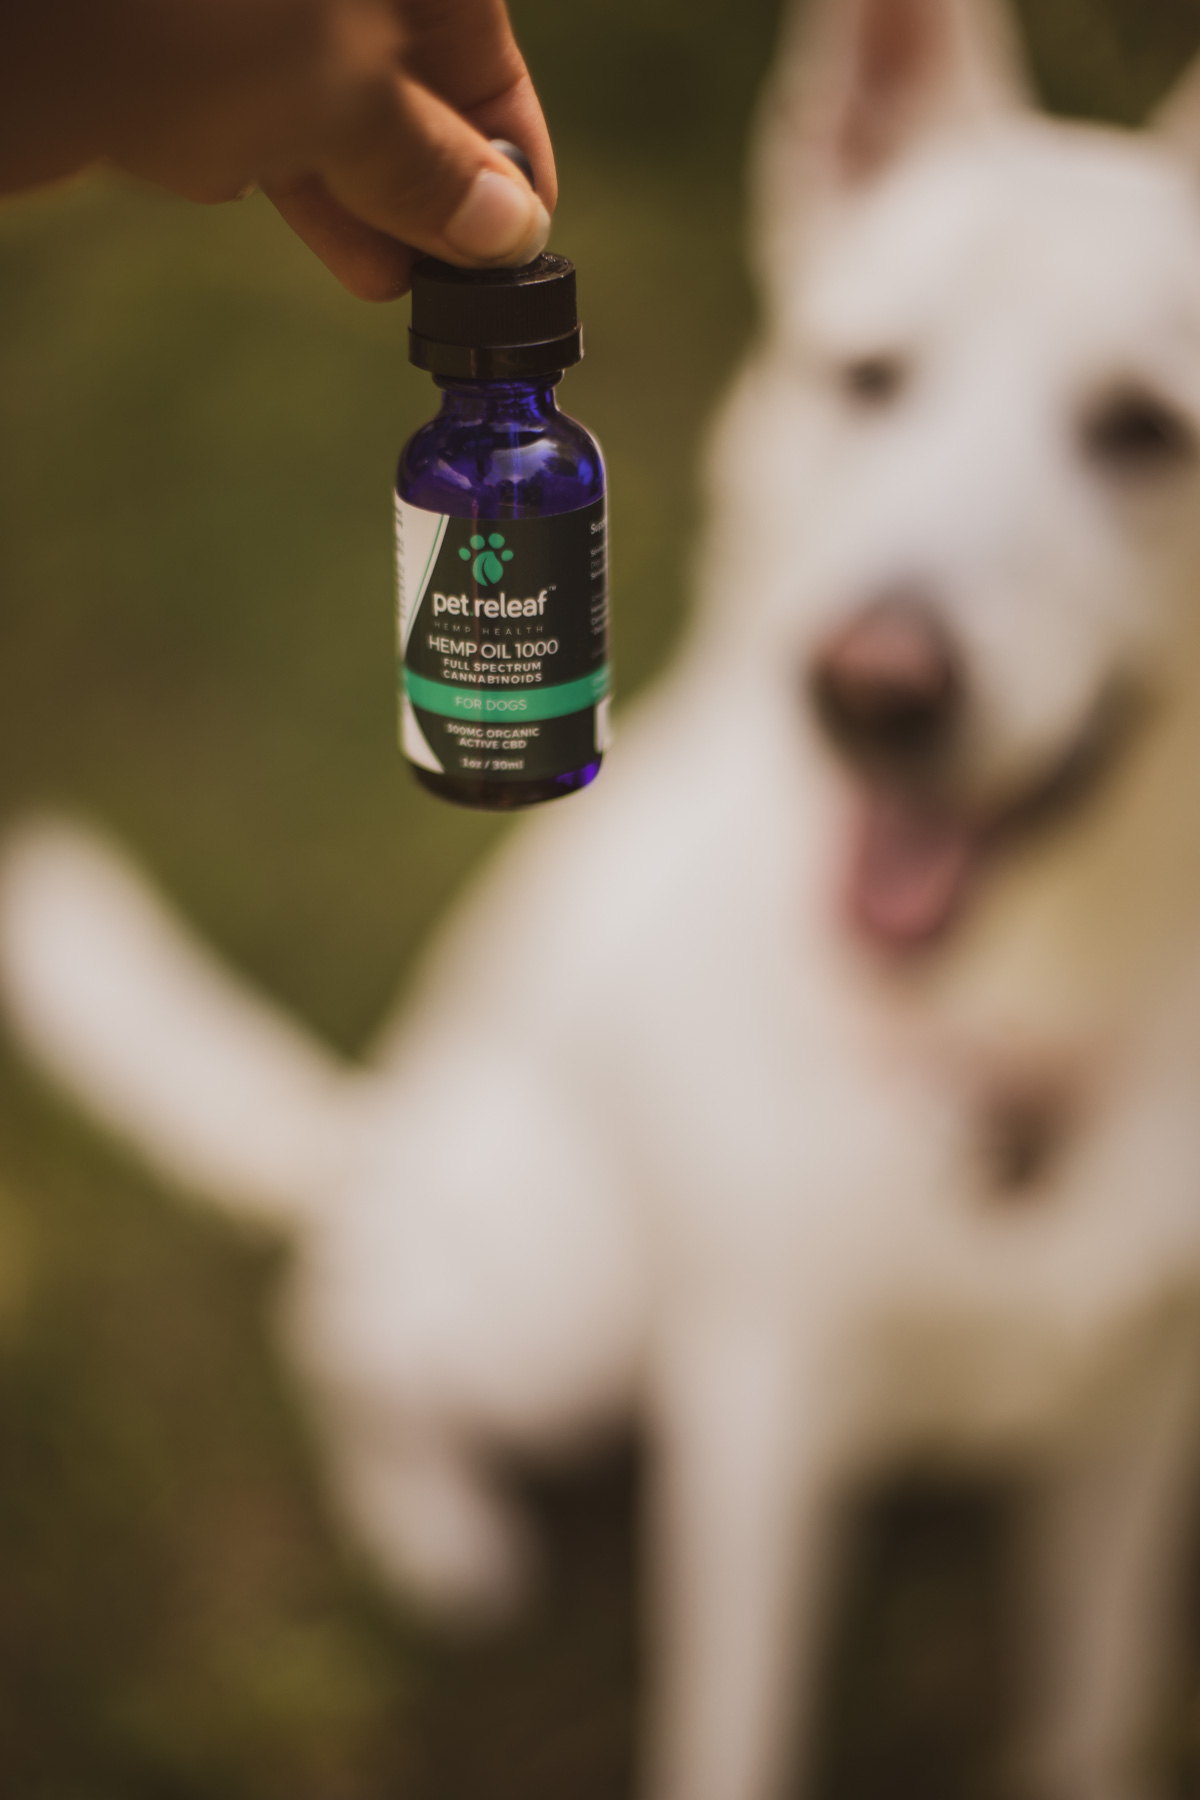 Spetsna's Sickly Winter & Pet Releaf CBD Oil Review | The